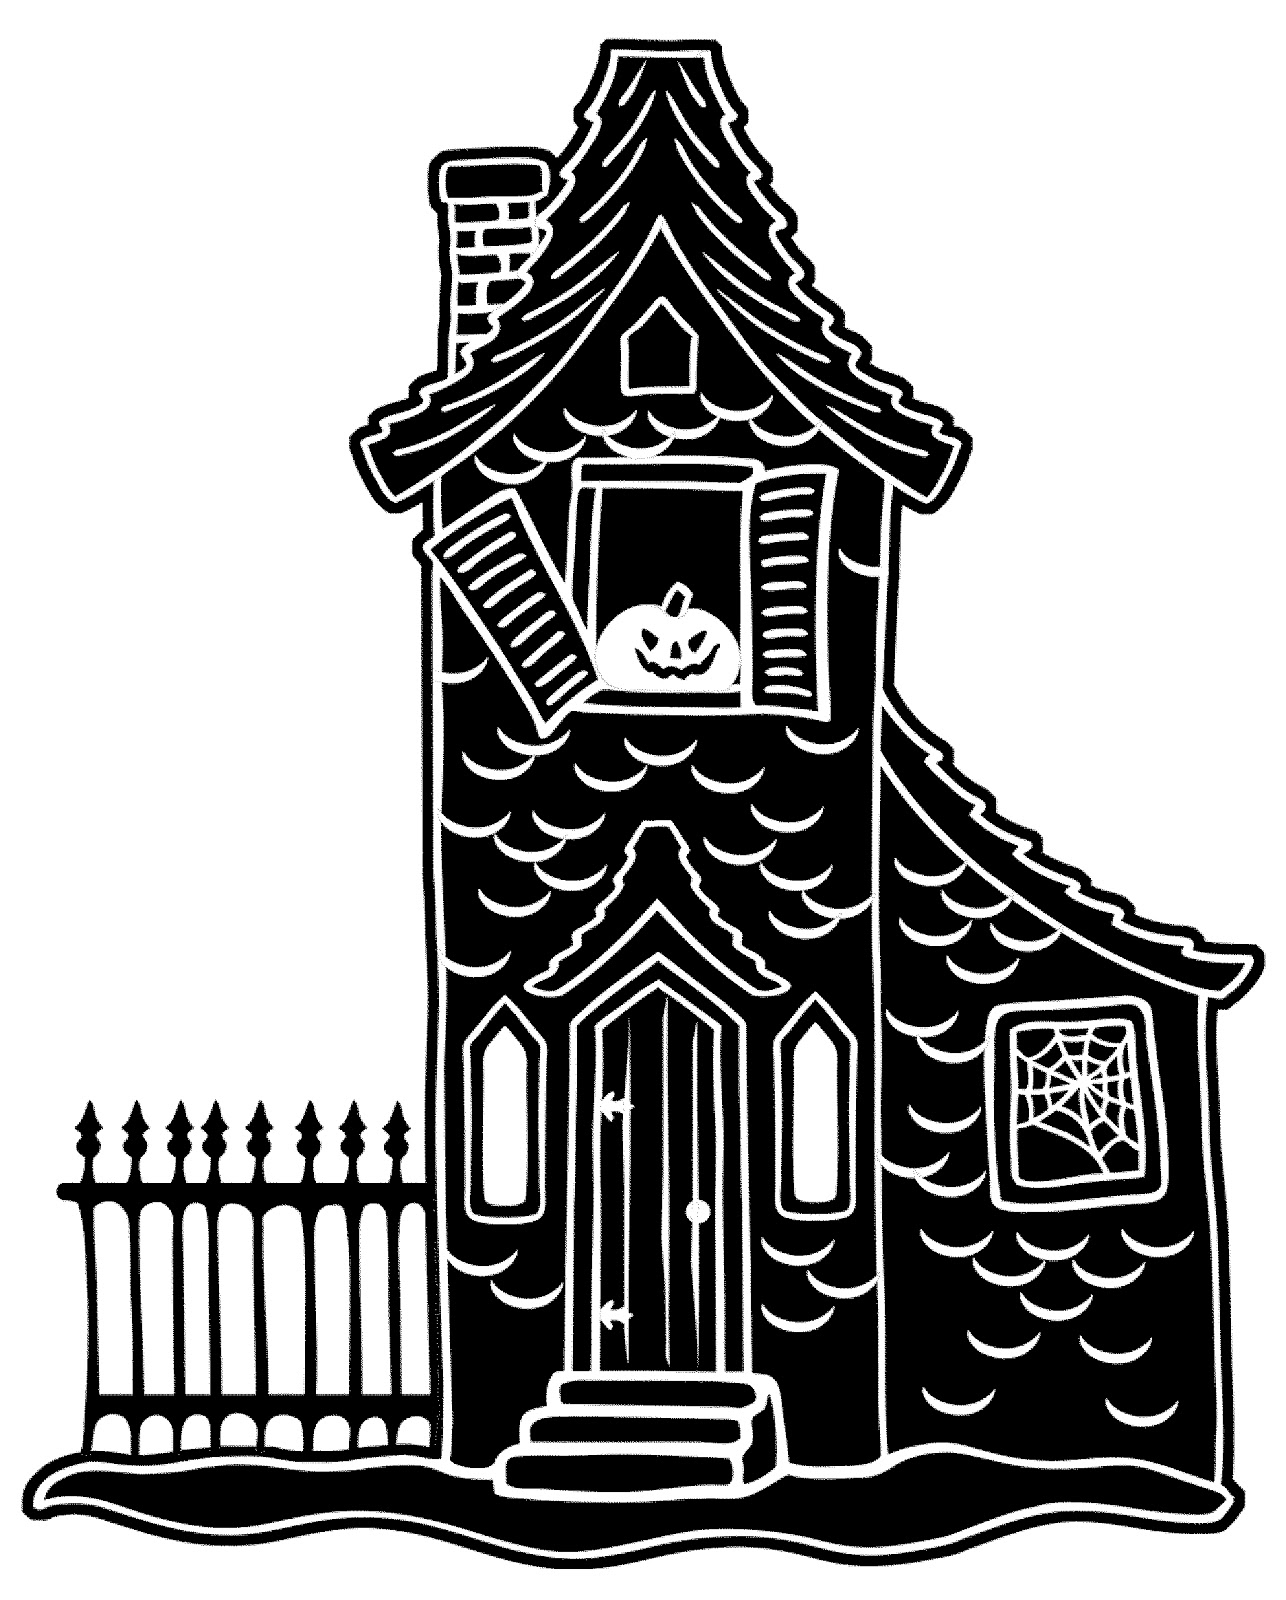 haunted house silhouette clip art at getdrawings com free for rh getdrawings com